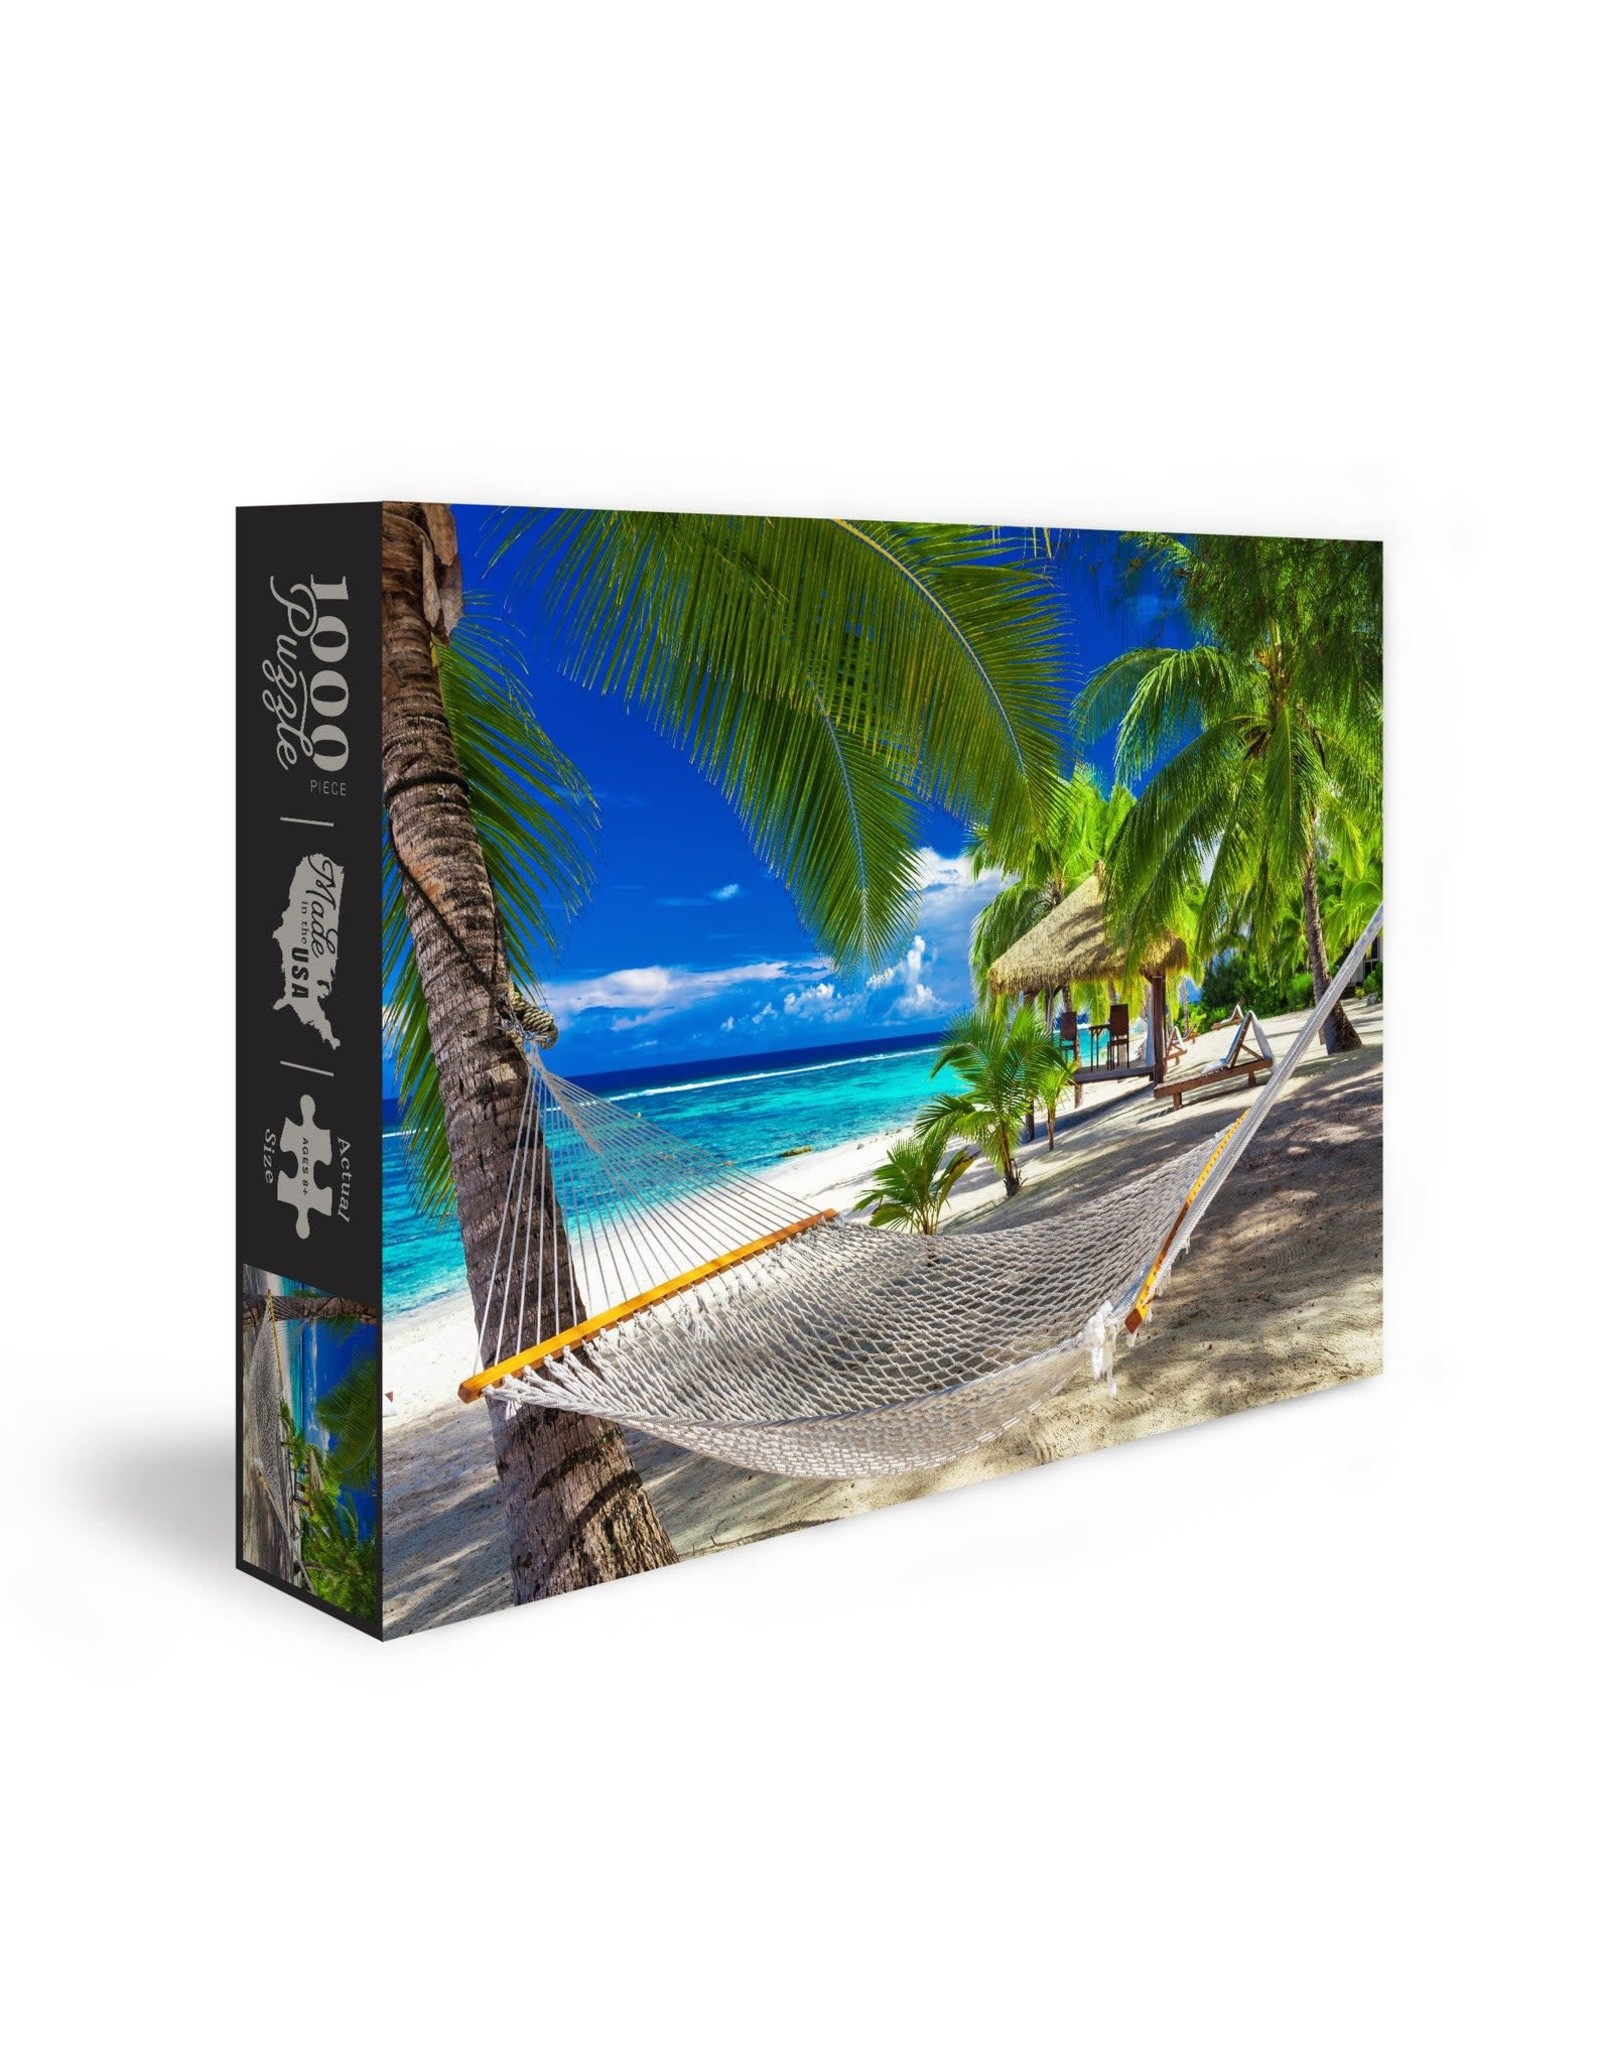 Hammock on Tropical Beach 1000 pc